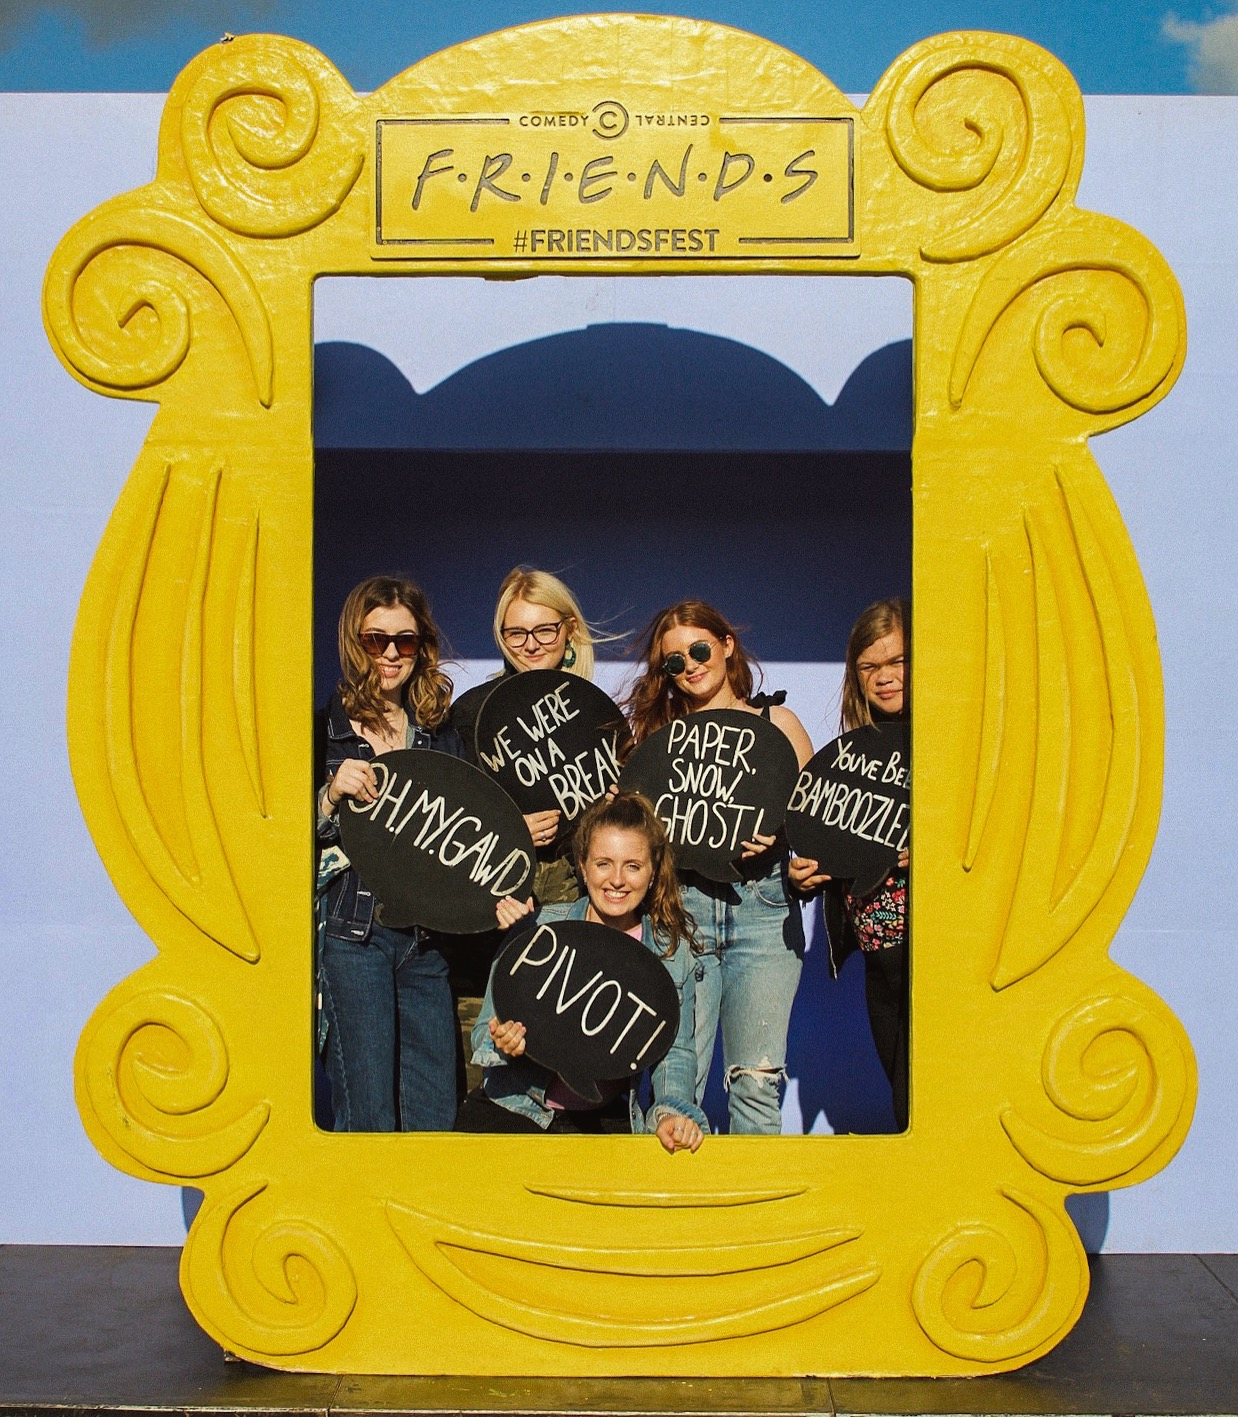 My Trip to Friendsfest